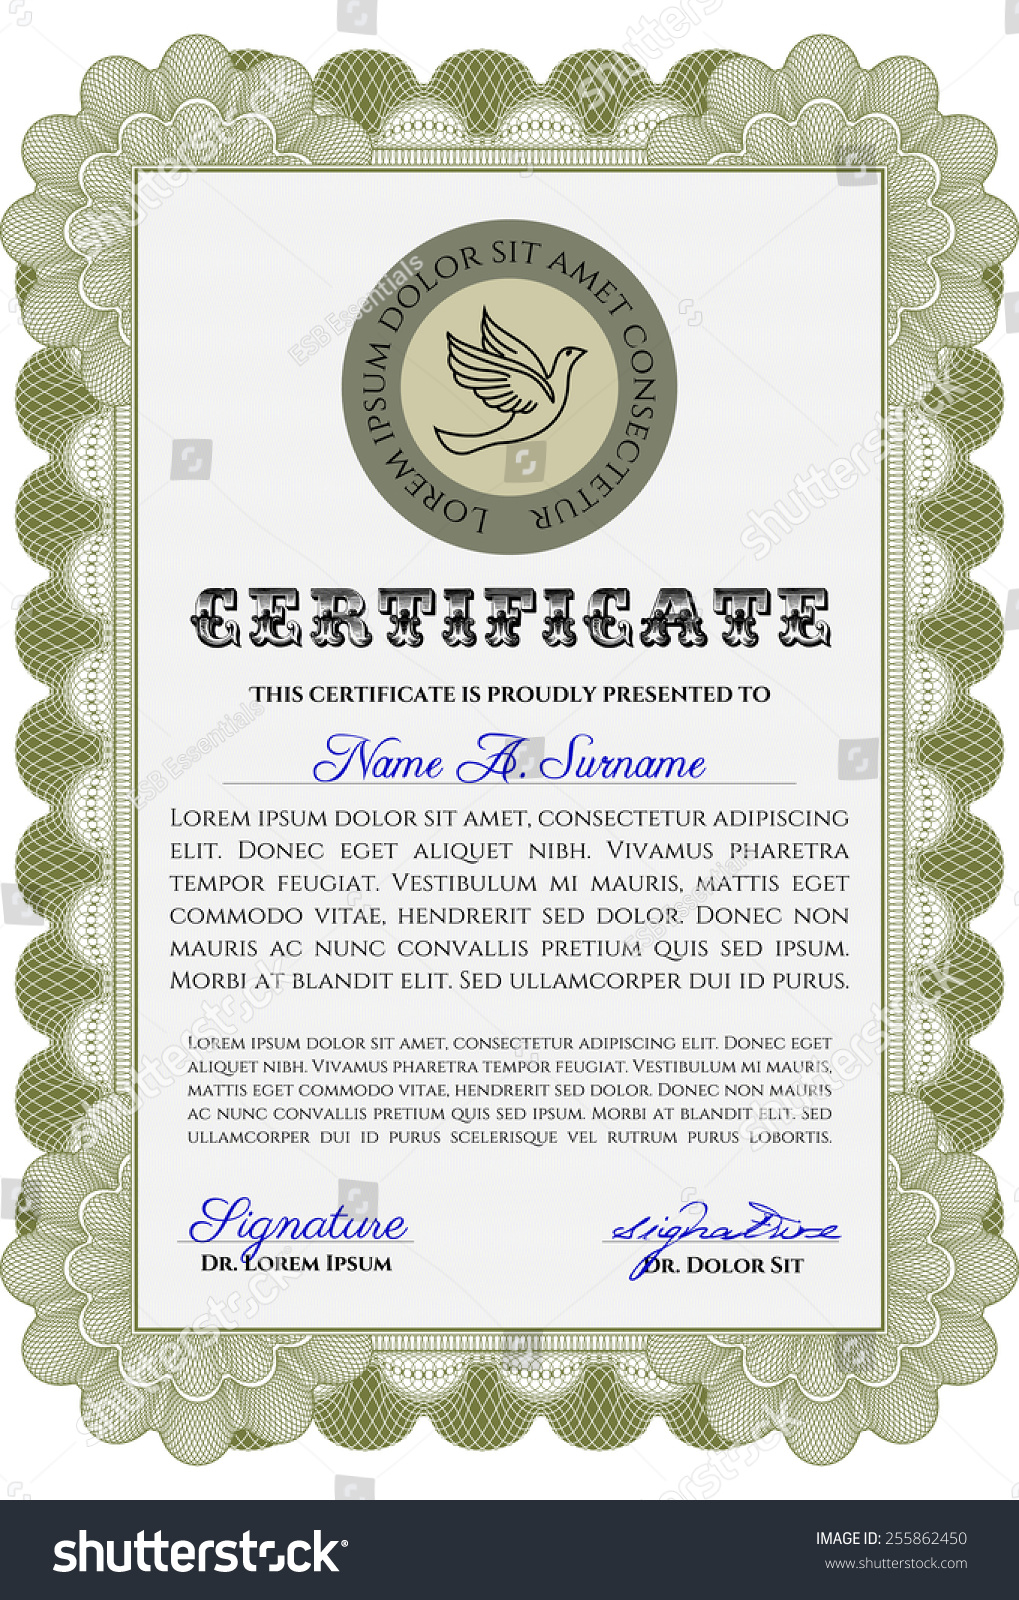 Green vertical diploma certificate template sample stock vector green vertical diploma certificate template sample stock vector 255862450 shutterstock yelopaper Images